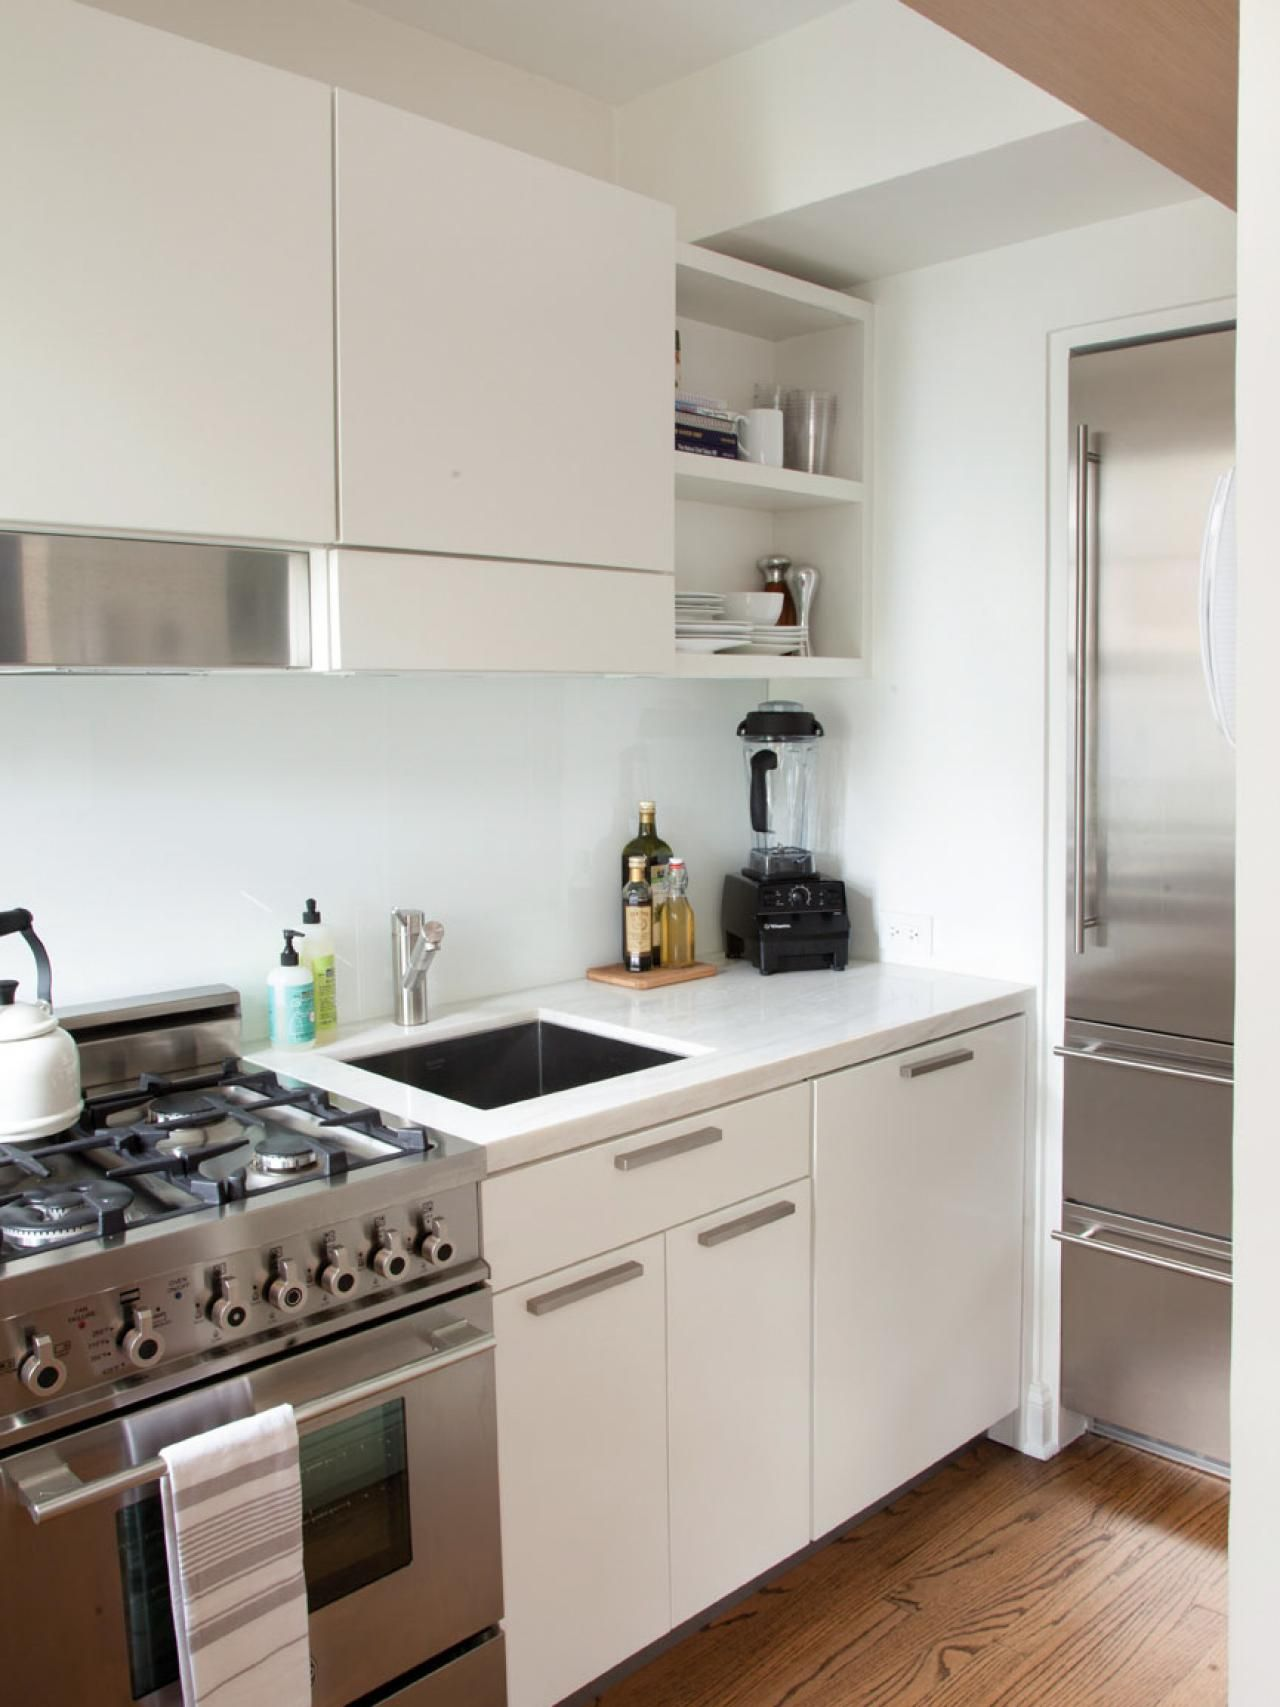 Pictures of Small Kitchen Design Ideas From | Pinterest | Simple ...